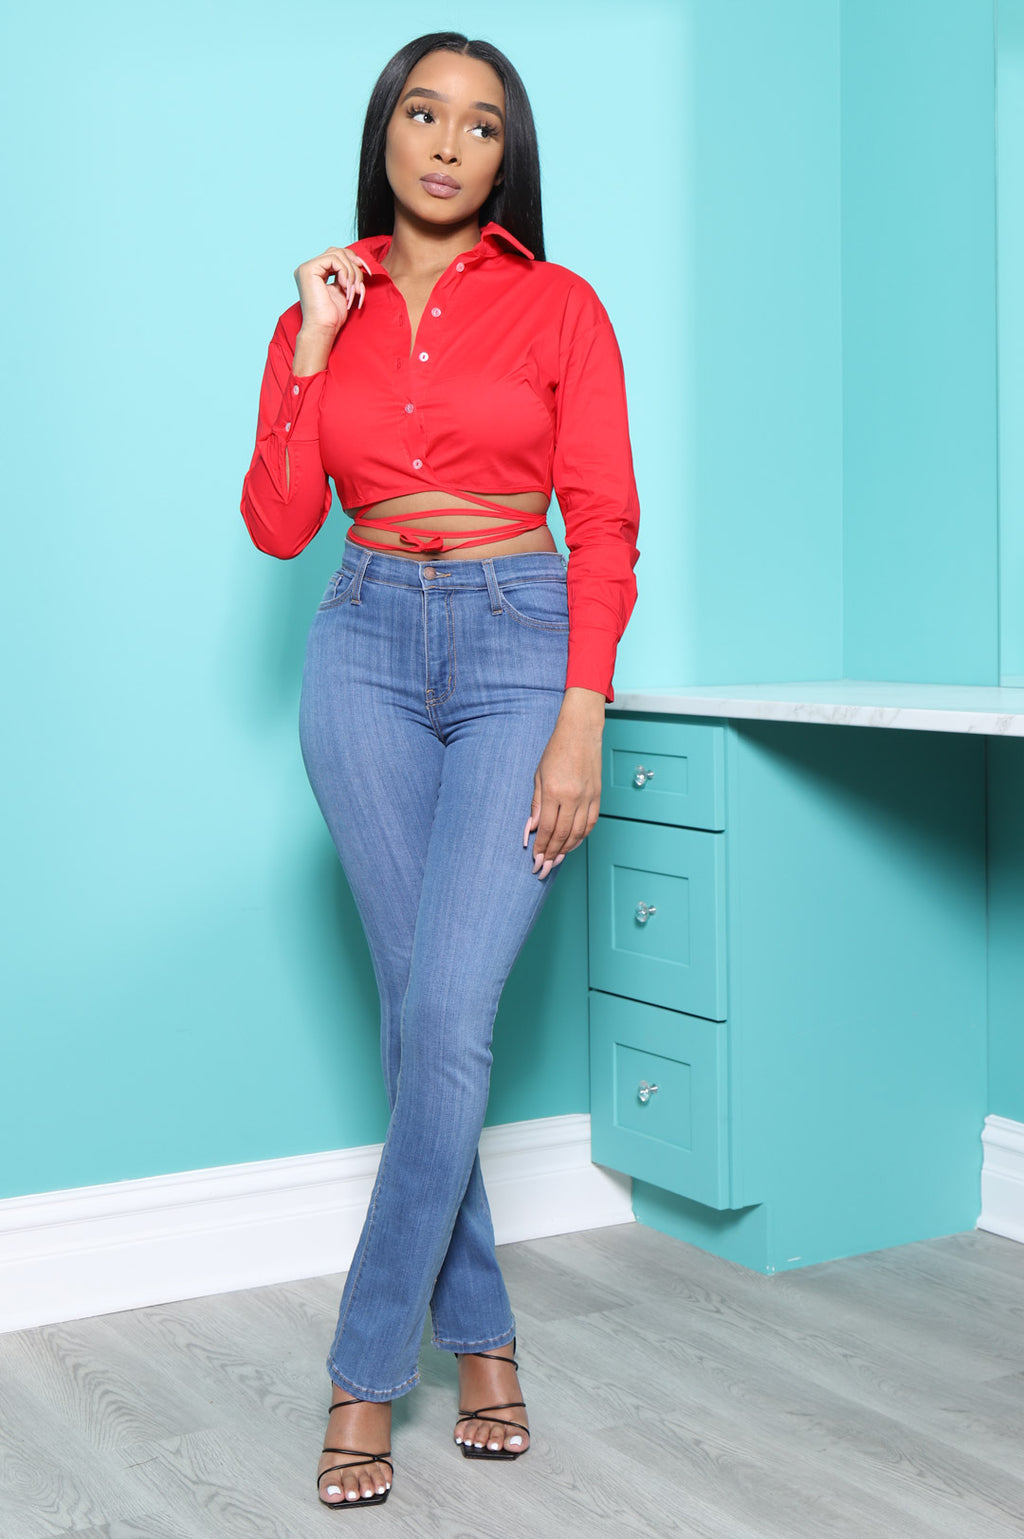 Best Of Me Cropped Button Up Top - Red - Swank A Posh